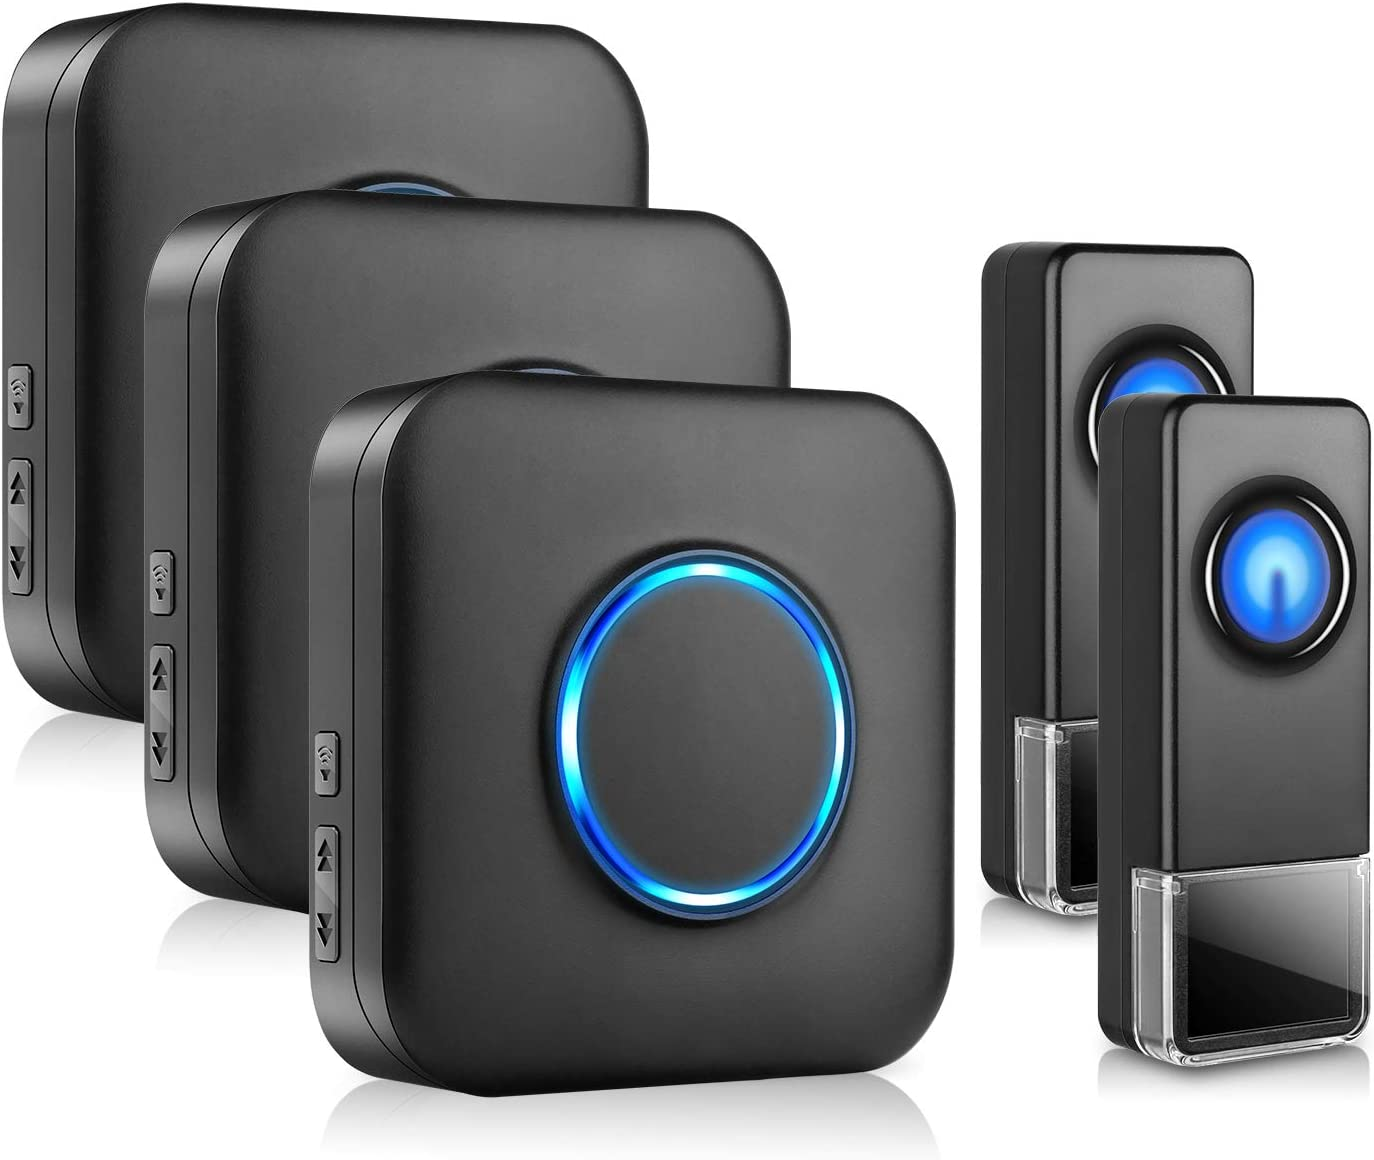 Wireless Door Bell BITIWEND Waterpoof Doorbell Chime Operating at 1000ft with 58 Tunes 5 Volume Levels LED Flash, Classroom Doorbell,Home Business Doorbell Chime, 2 Push Buttons & 3 Receivers